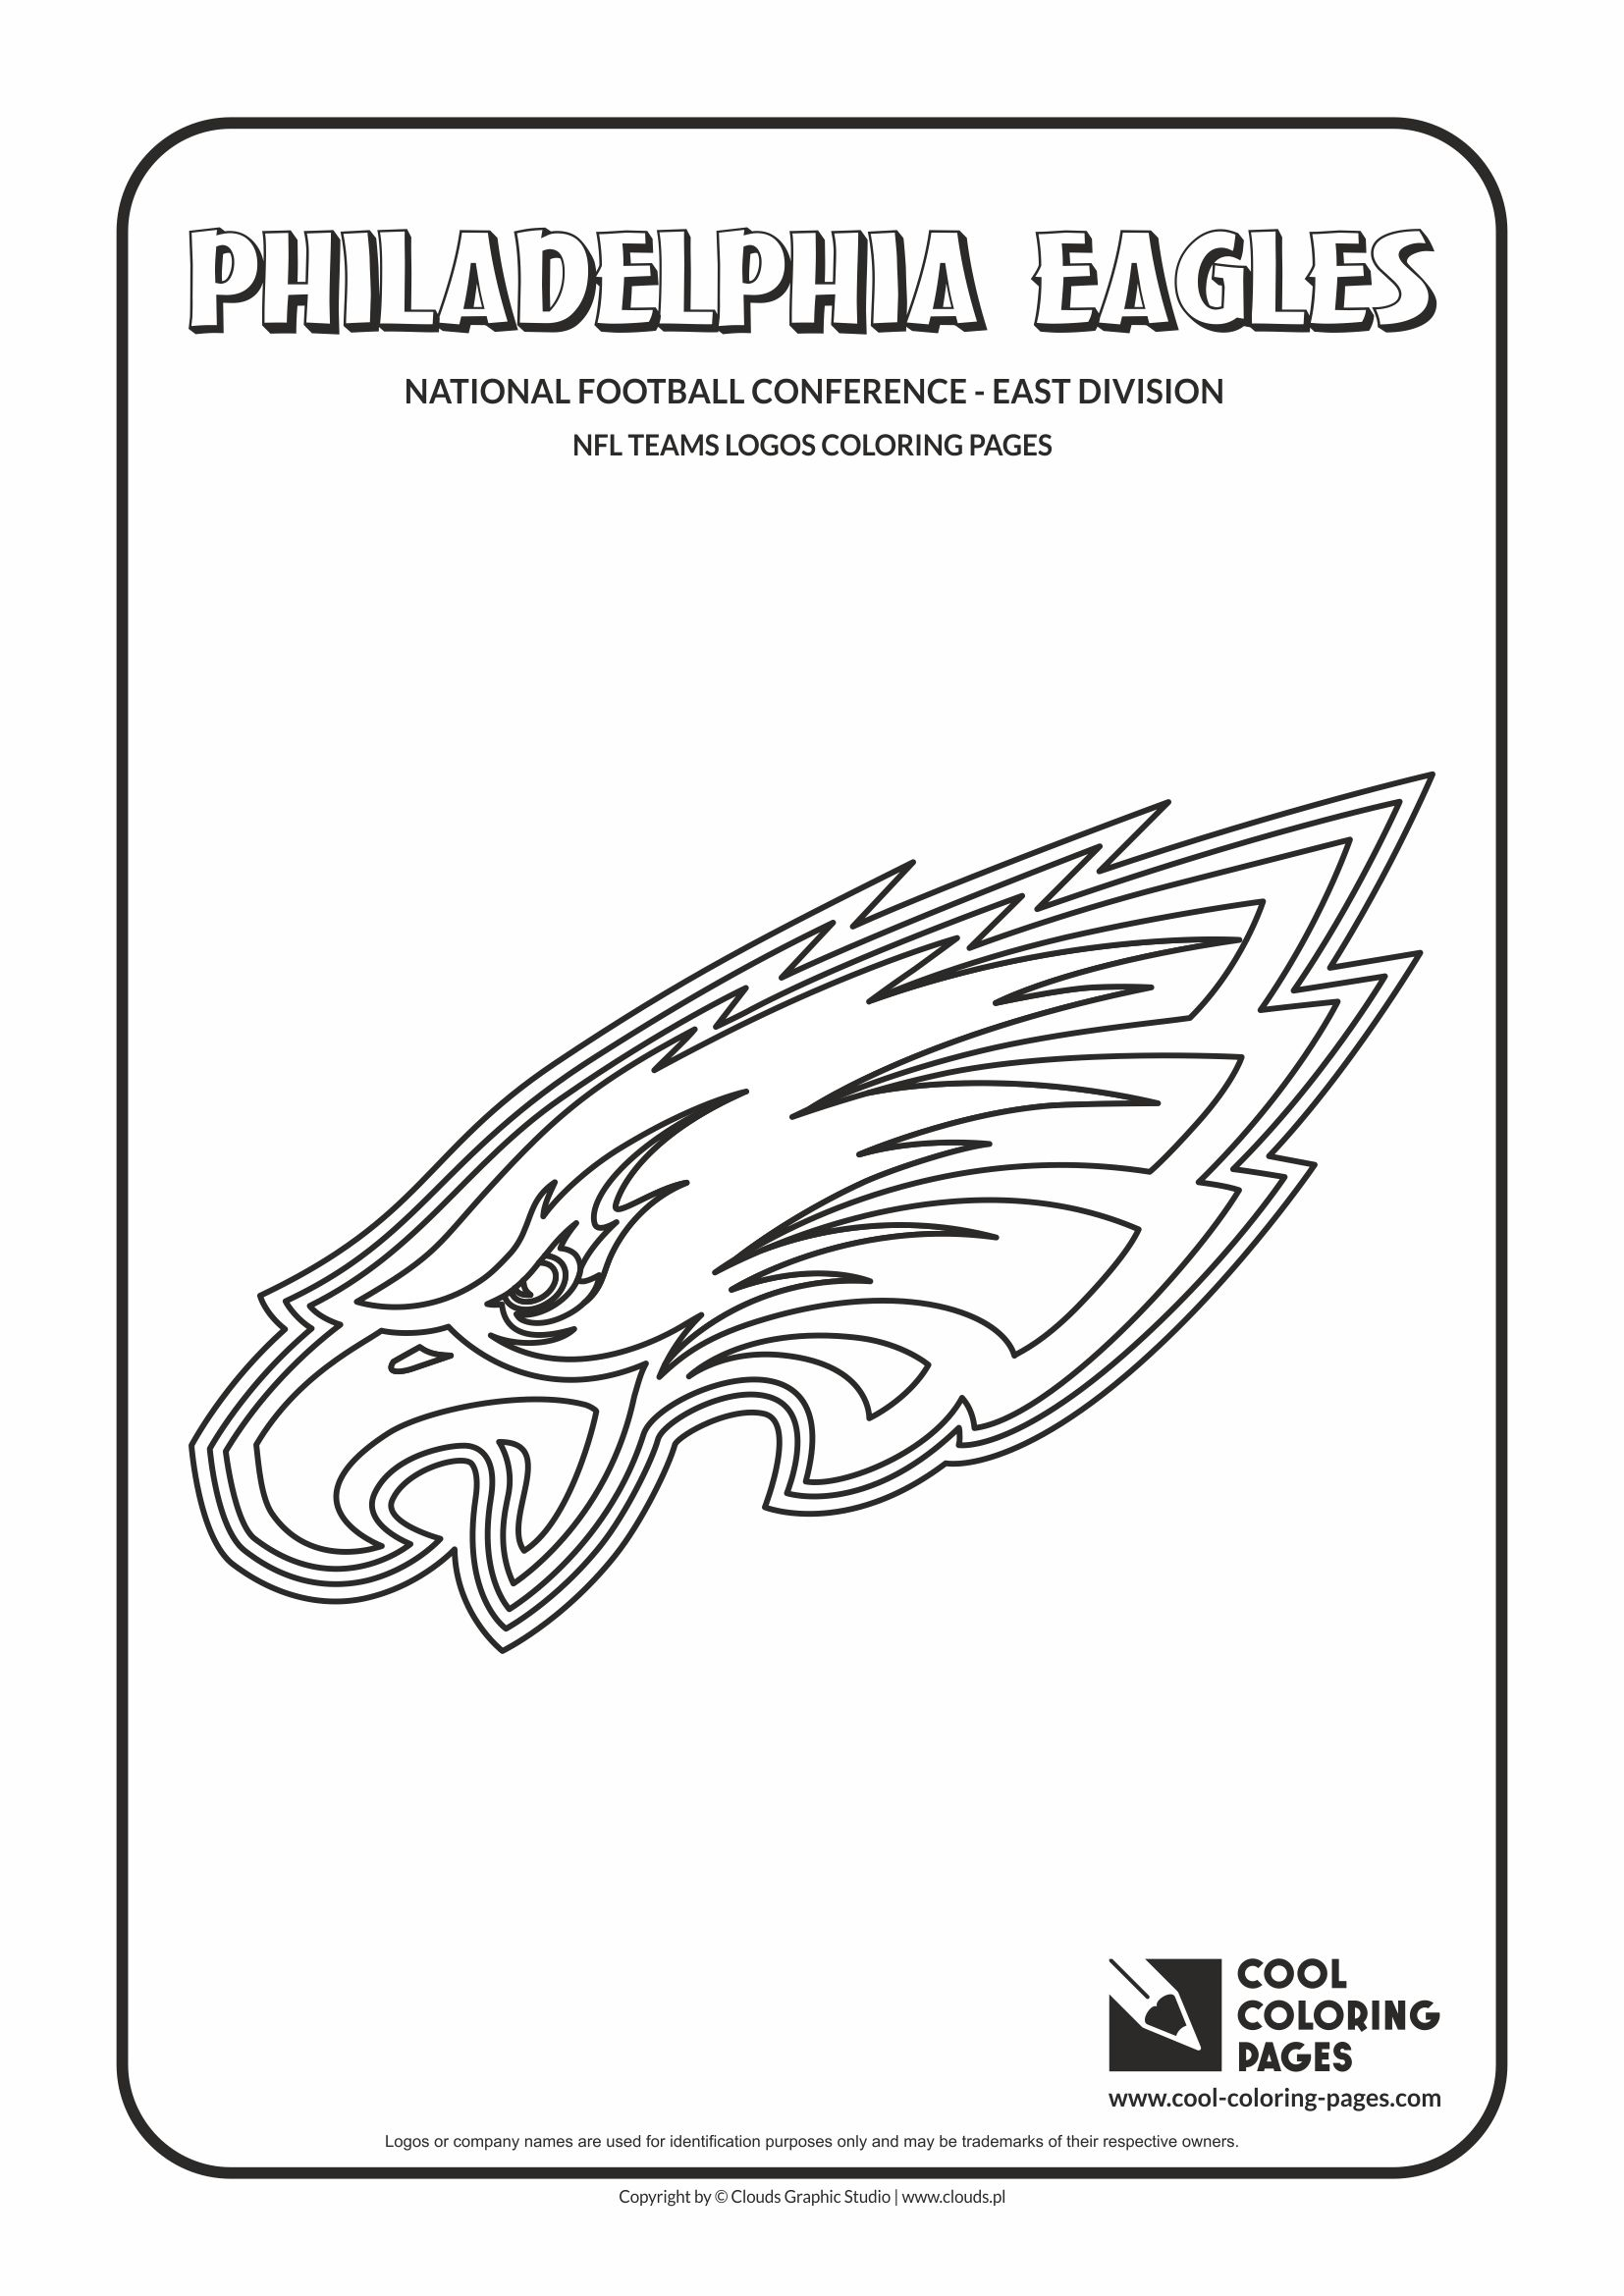 Cool Coloring Pages Philadelphia Eagles - NFL American ...